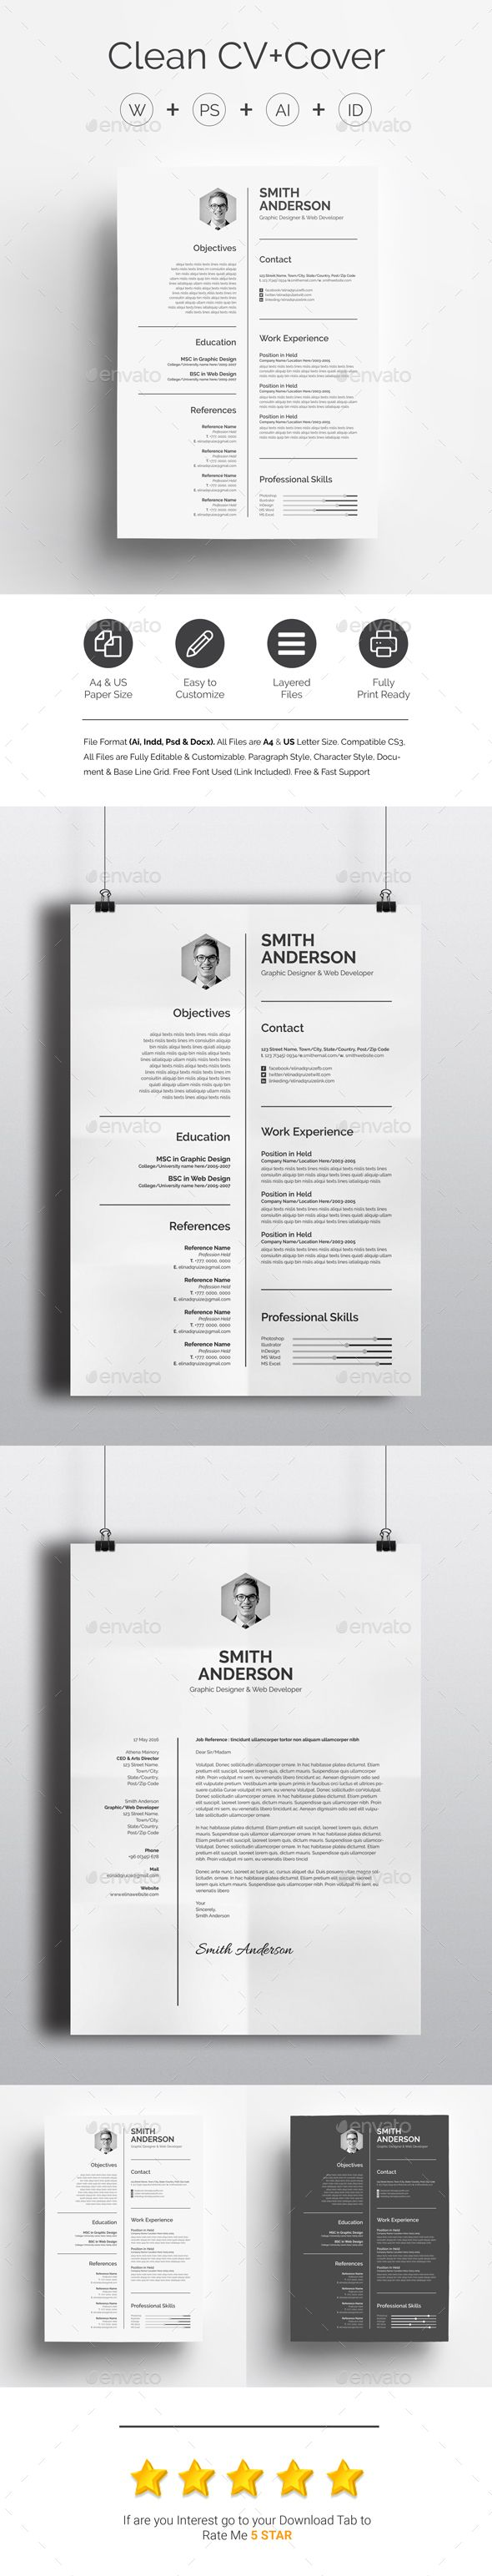 Clean CV+Cover Template PSD, Vector EPS, InDesign INDD, AI ...